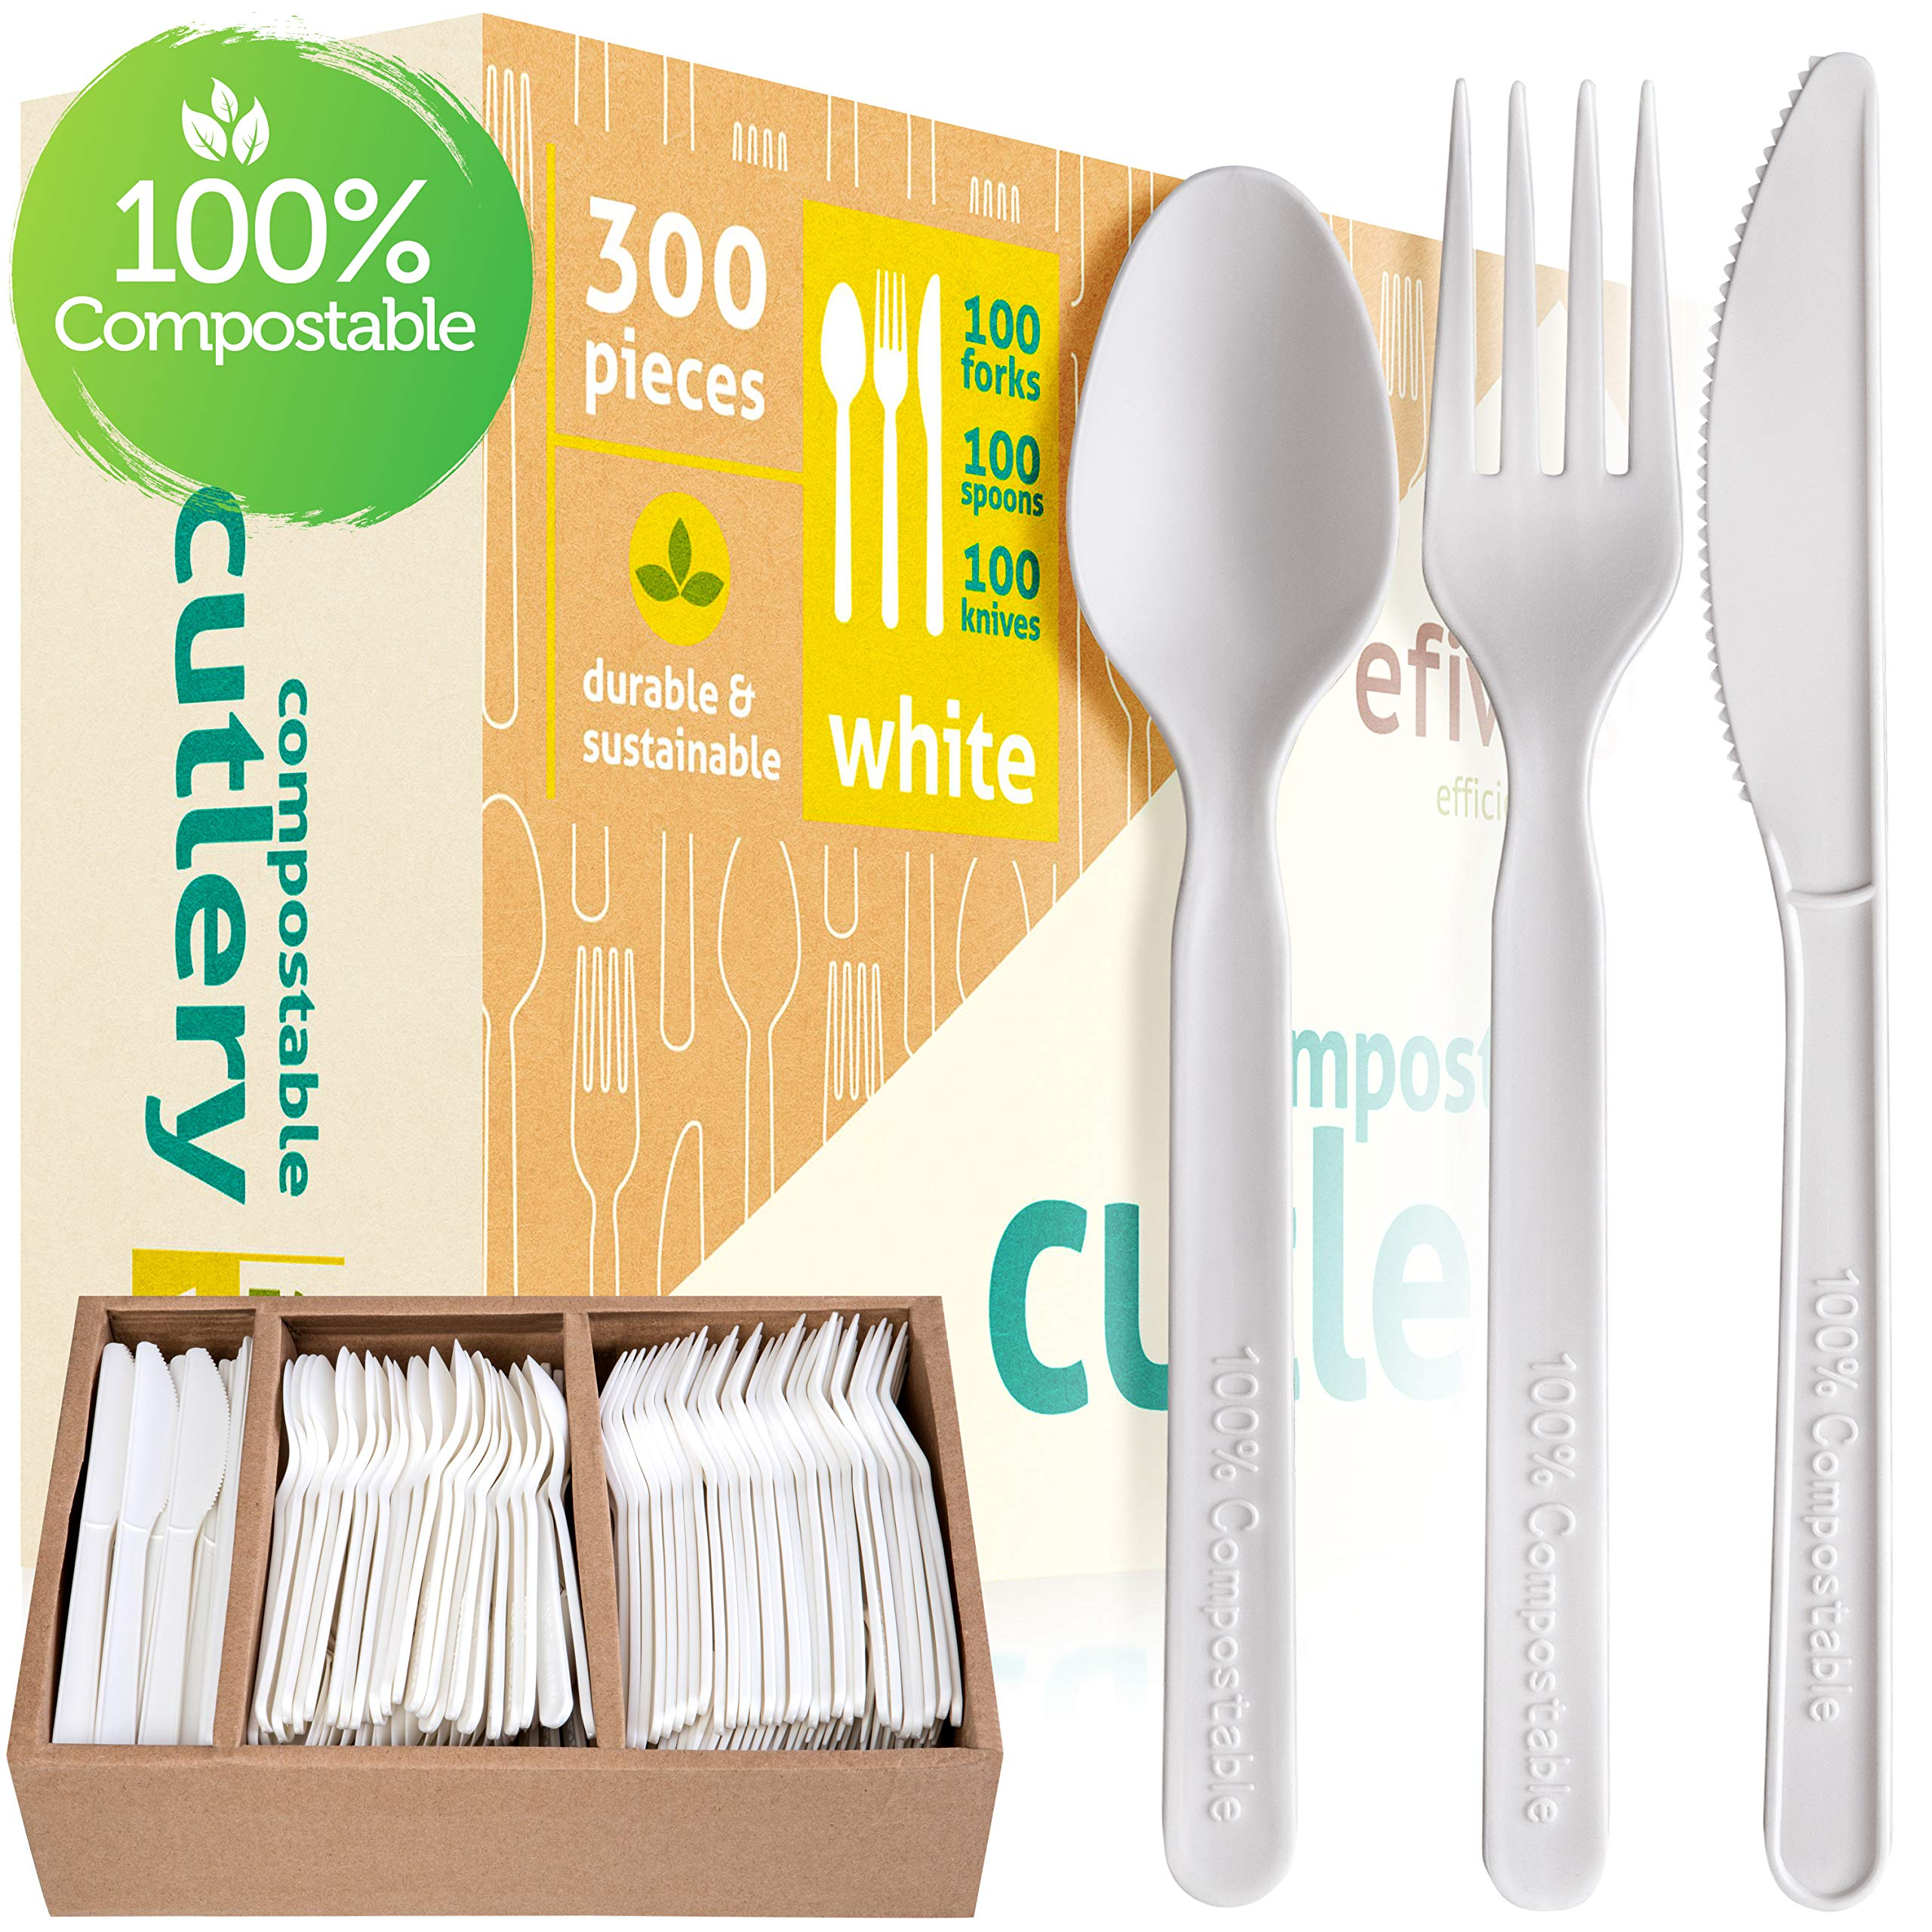 Compostable Cutlery Set - 100% Biodegradable And Disposable - Eco Friendly Alternative to Silverware And Traditional Plastic Utensils - Pack of 300 Incl. Knives, Forks and Spoons And Storage Tray by EFIWASI